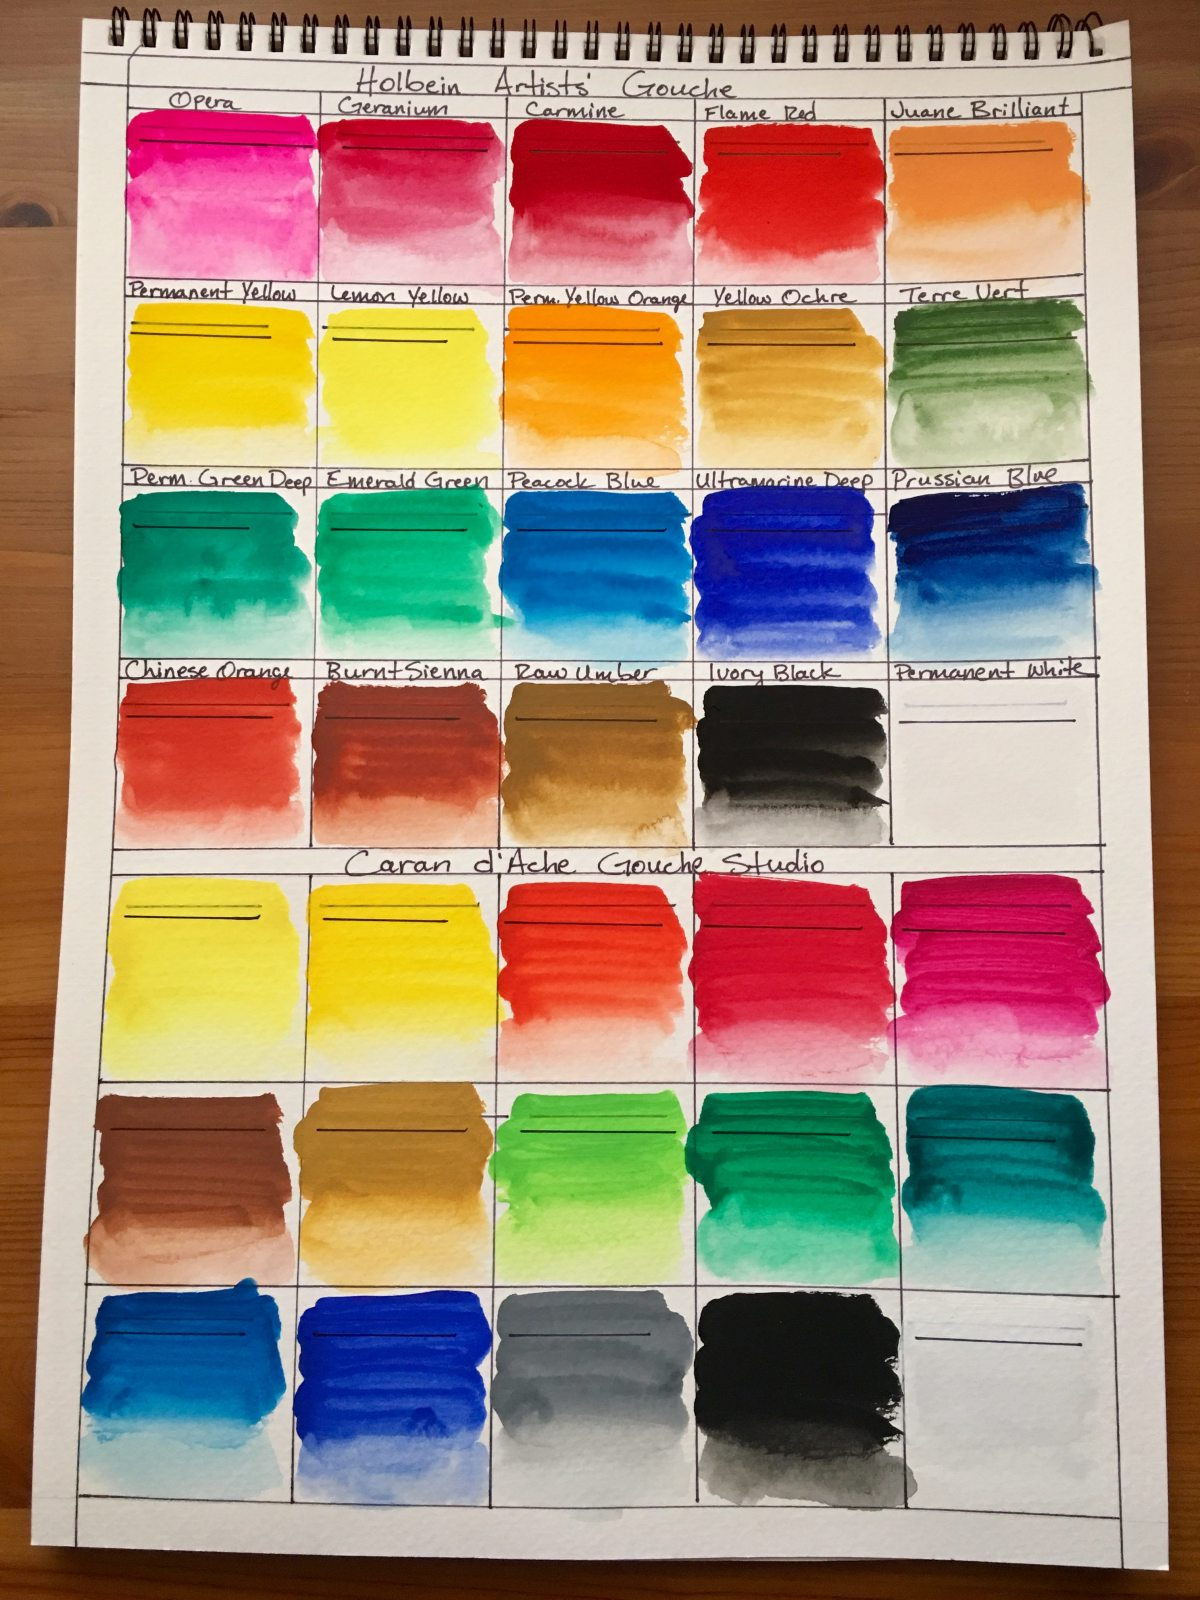 Caran d'Ache gouache studio 15 pan palette holbein artists gouache set of 18 5ml tubes in a mijello mission palette, swatch card